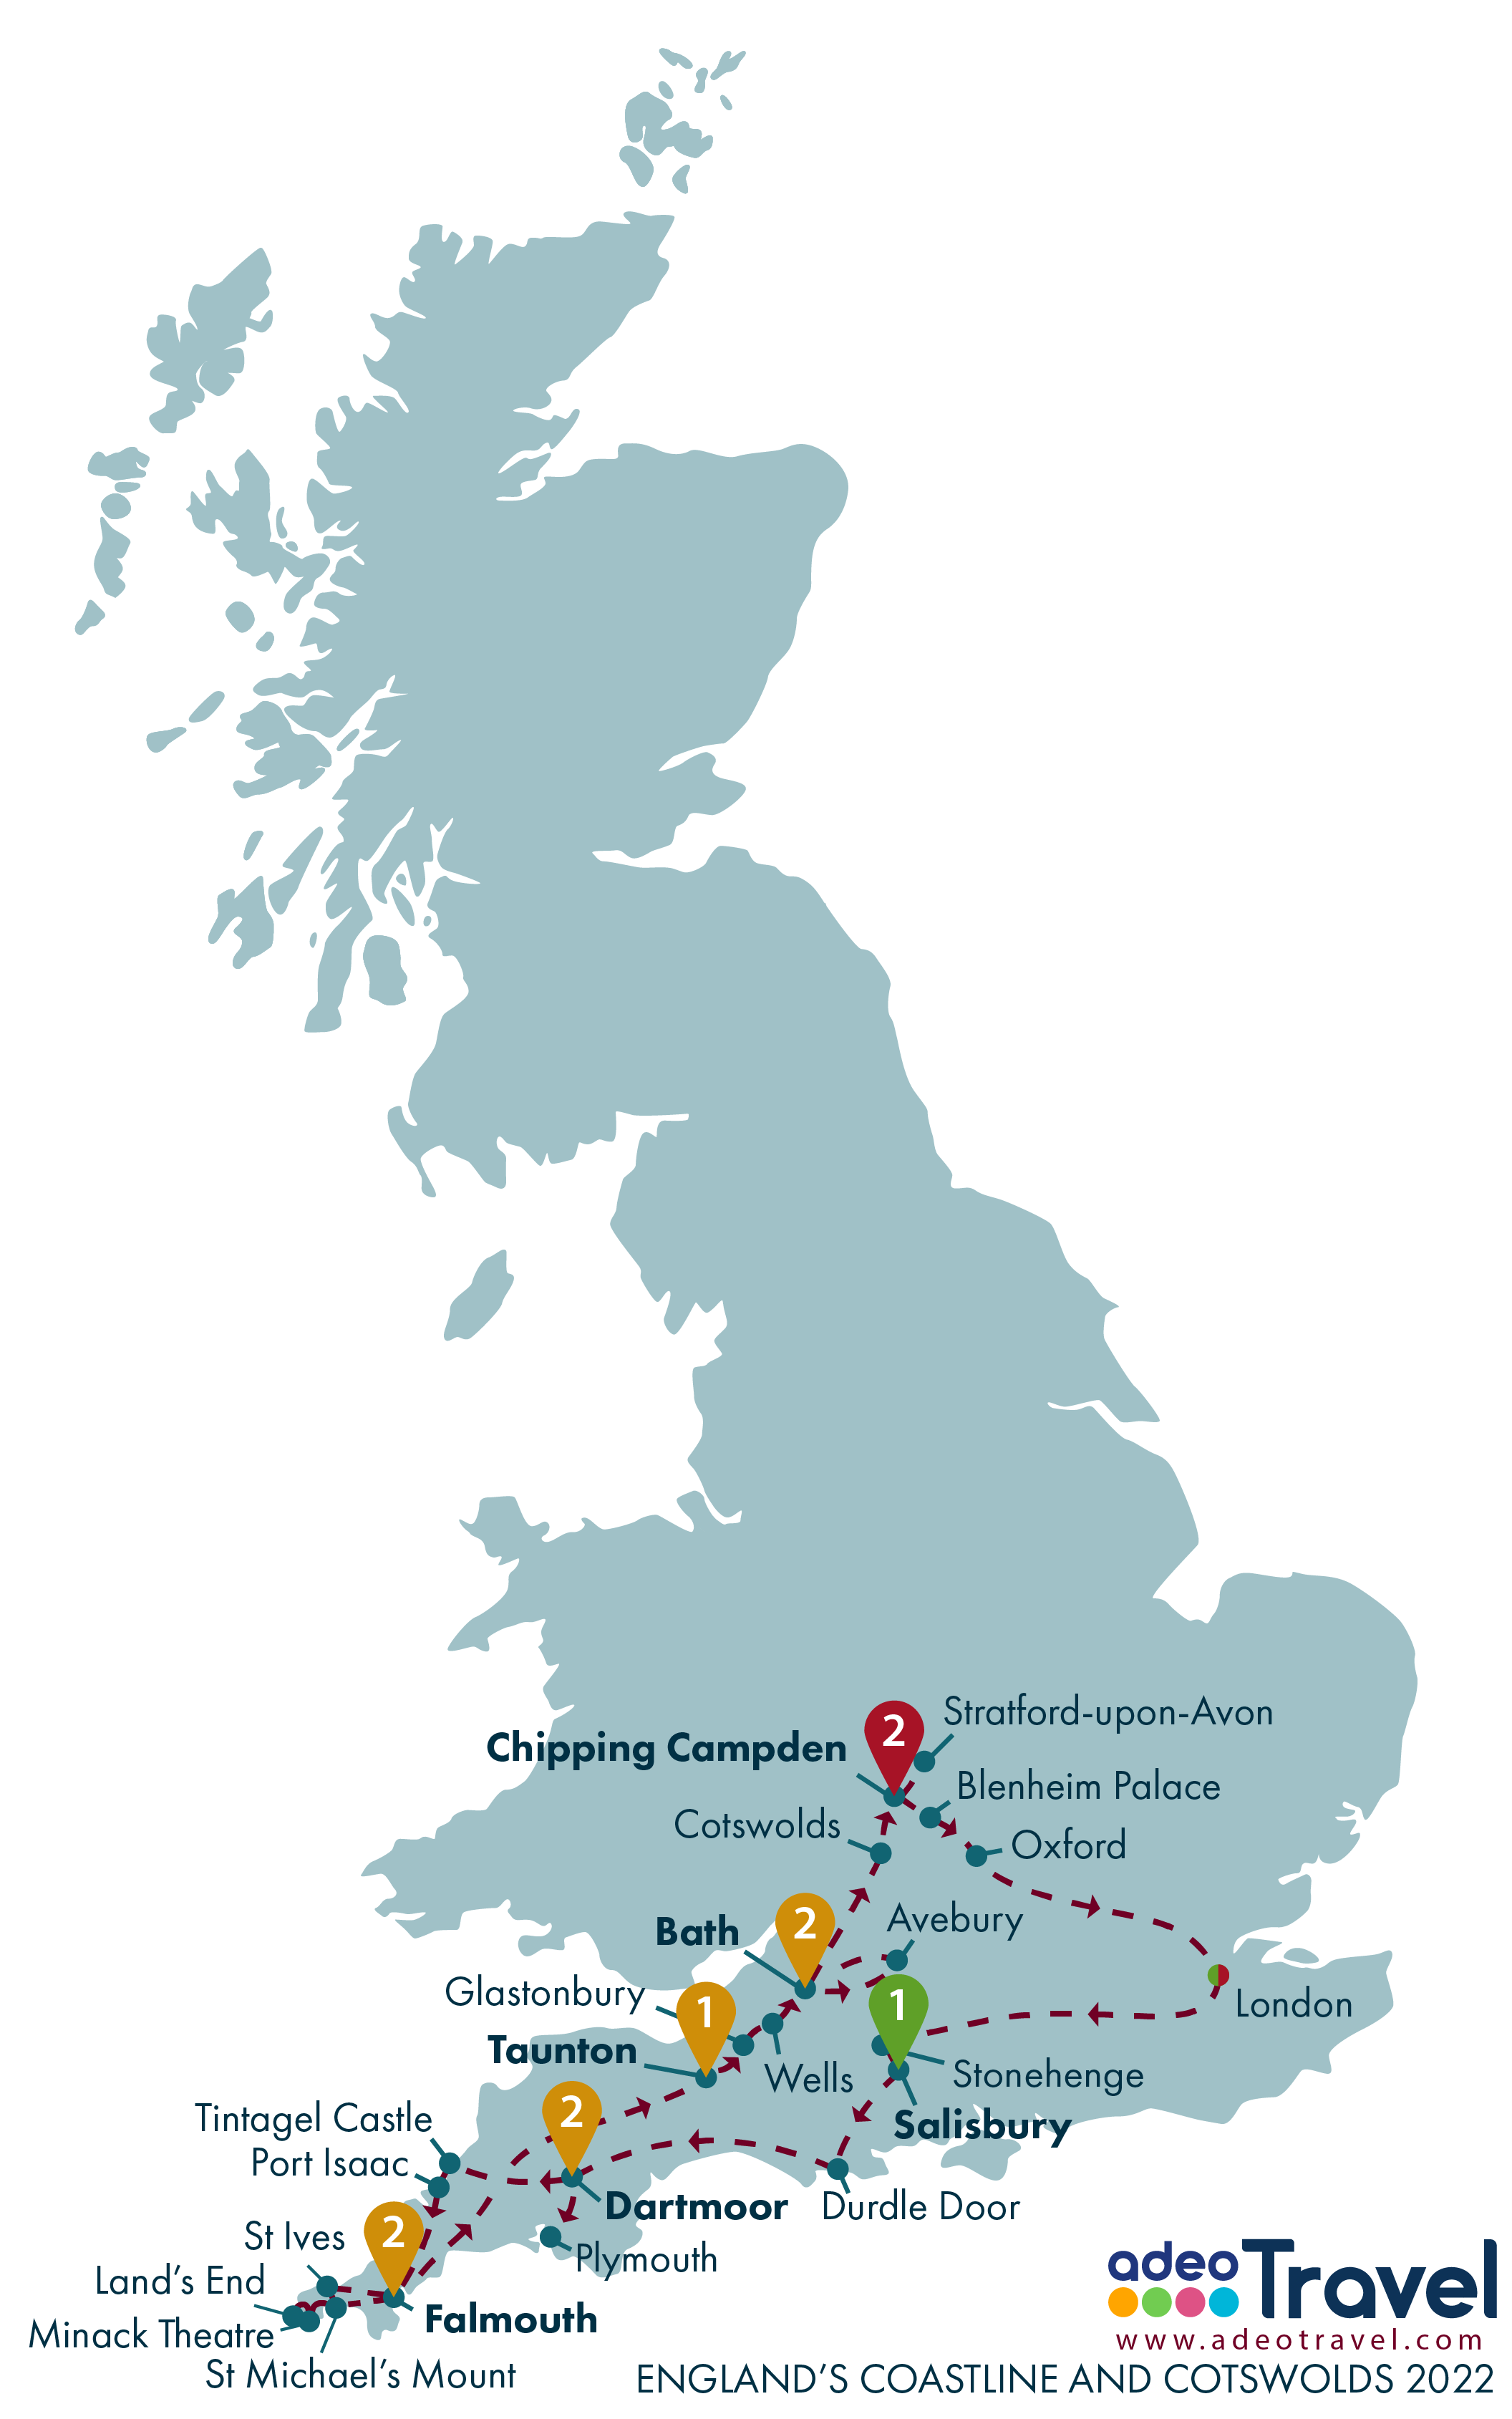 Map - England's Coastline and Cotswolds 2022